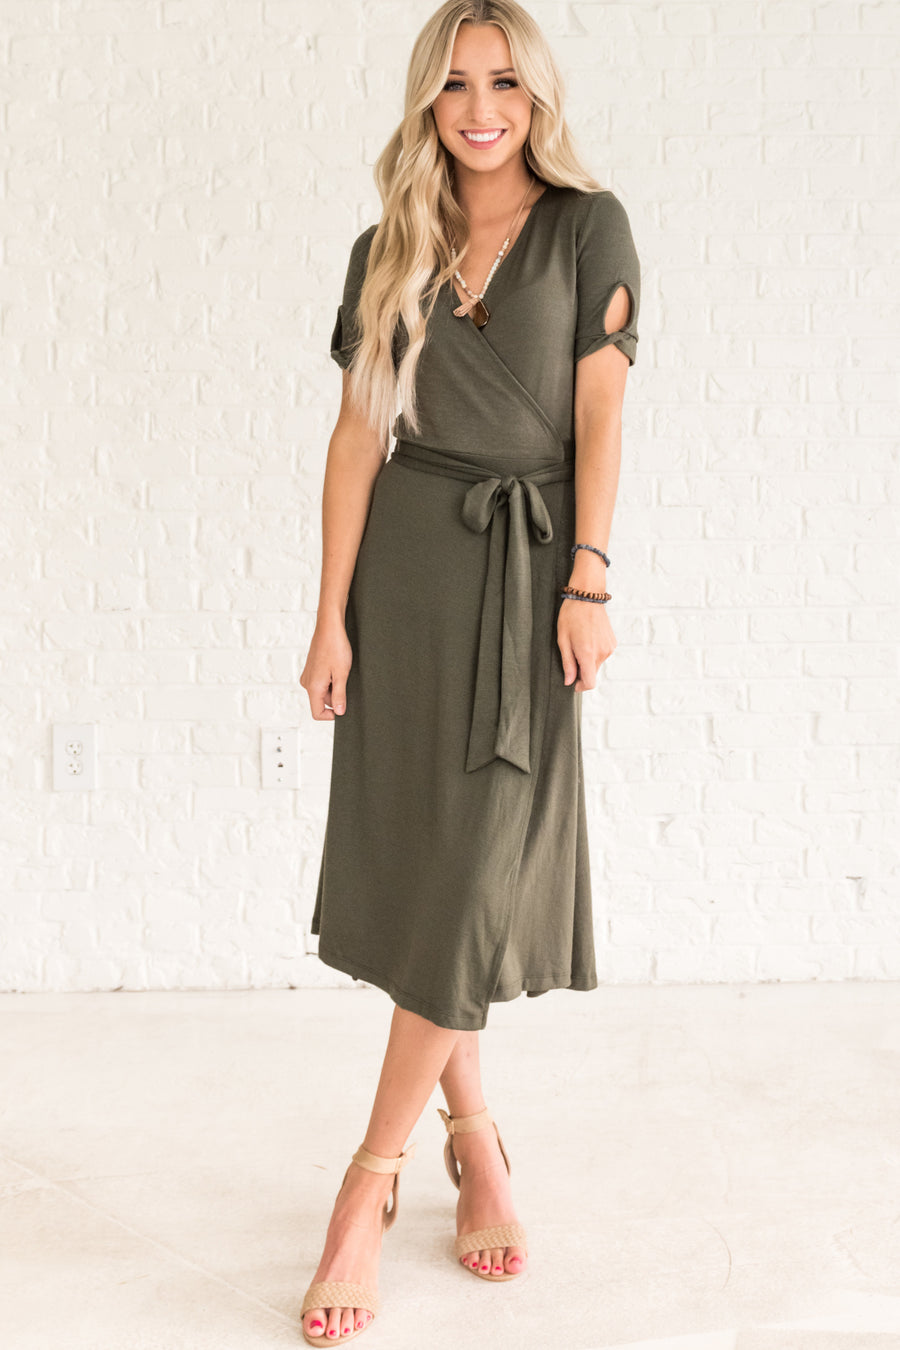 Nursing Friendly Clothes Boutique Styles For New Mothers